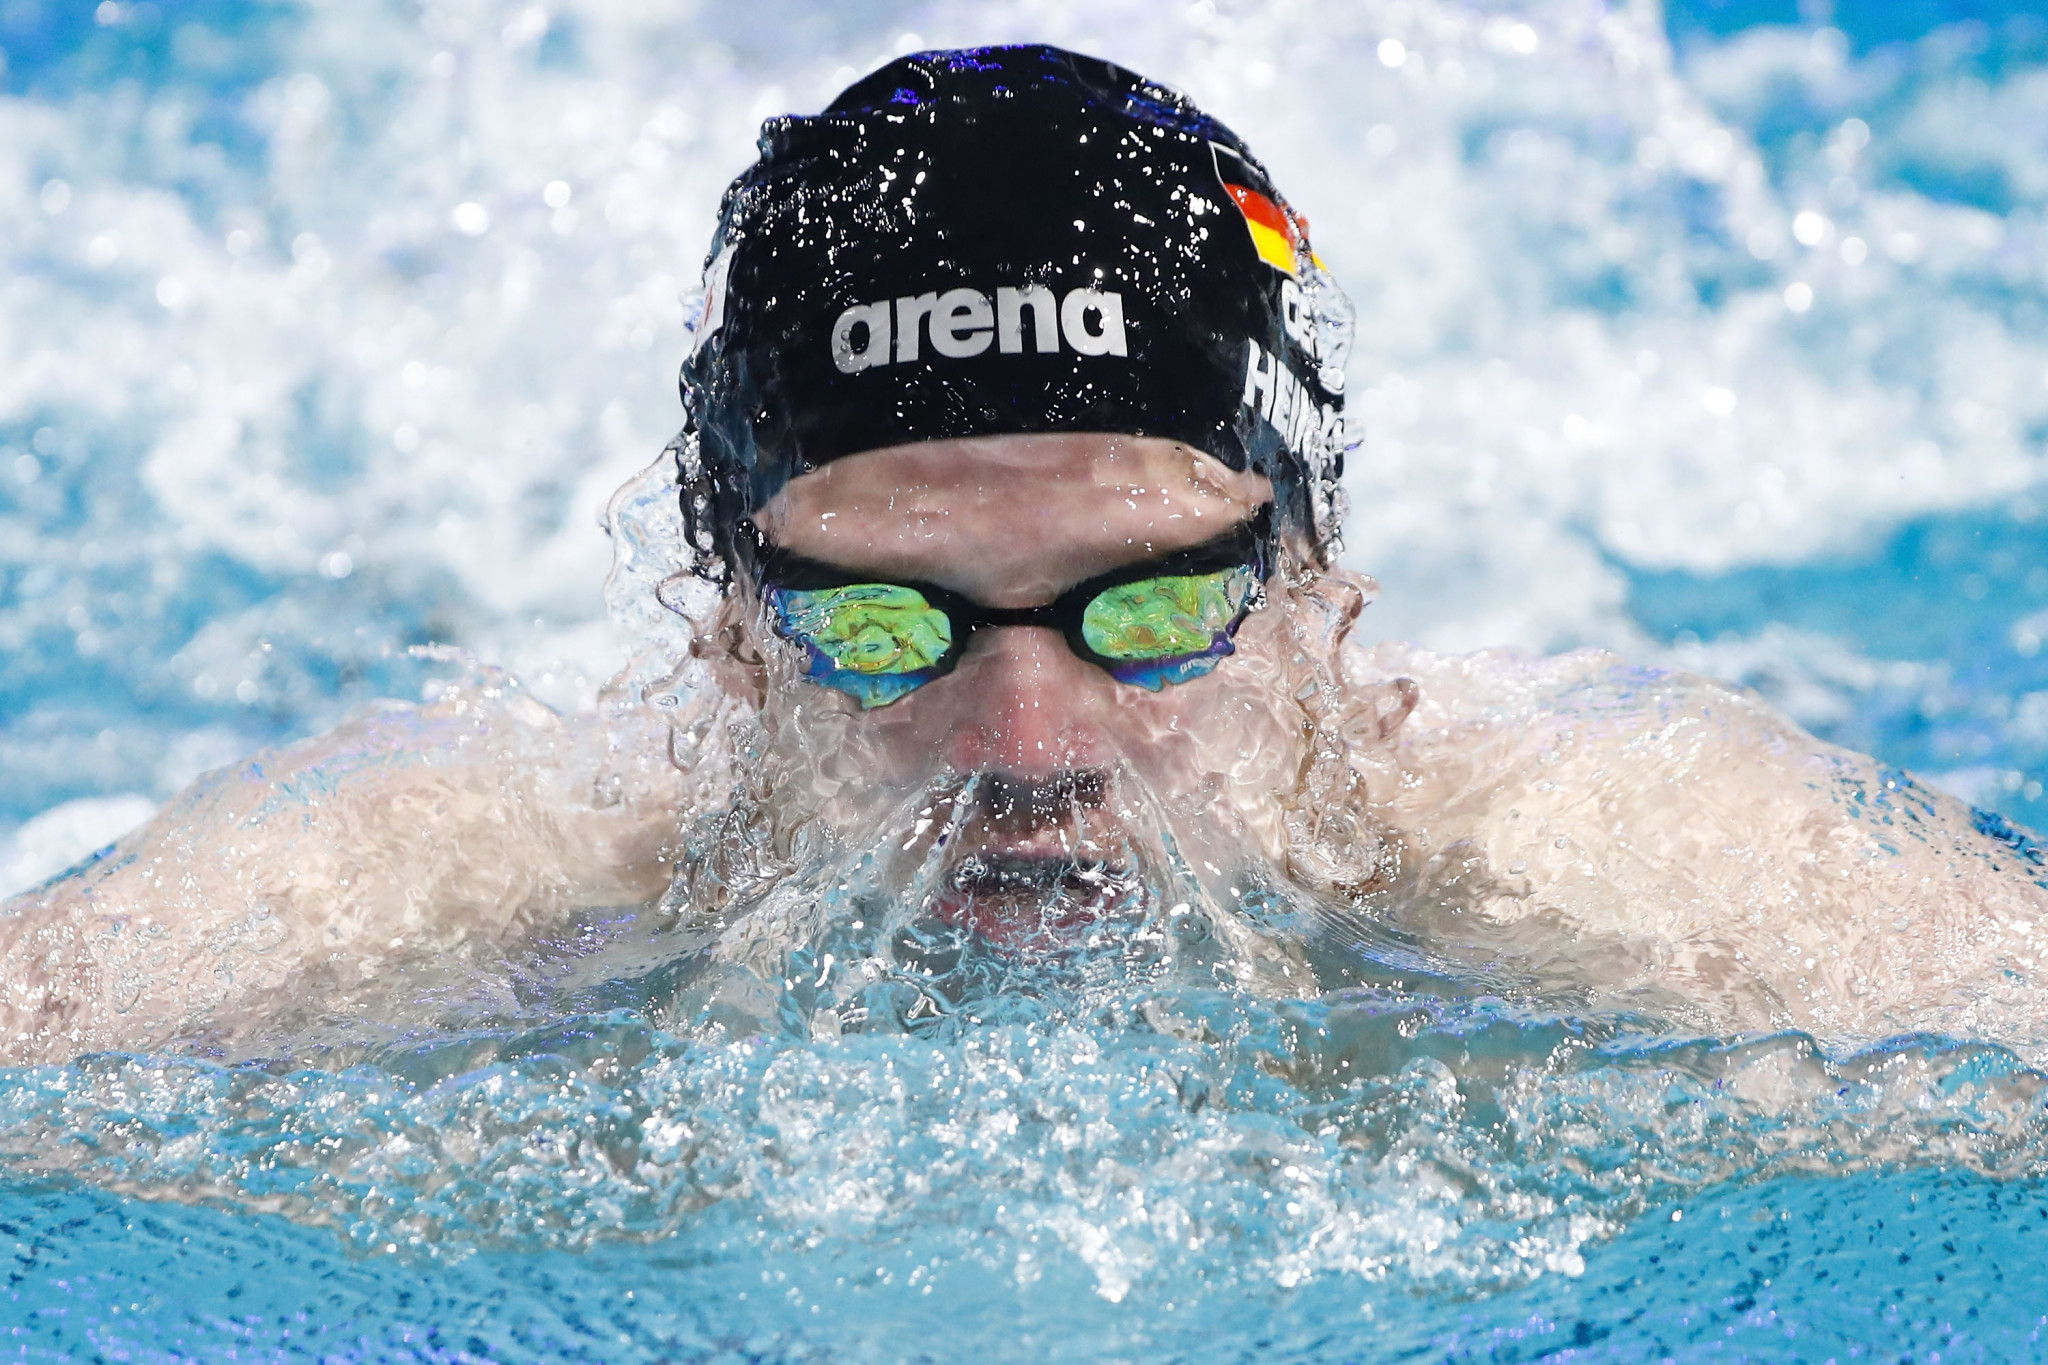 Germany's Philip Heintz topped the men's 200m individual medley podium ©Getty Images